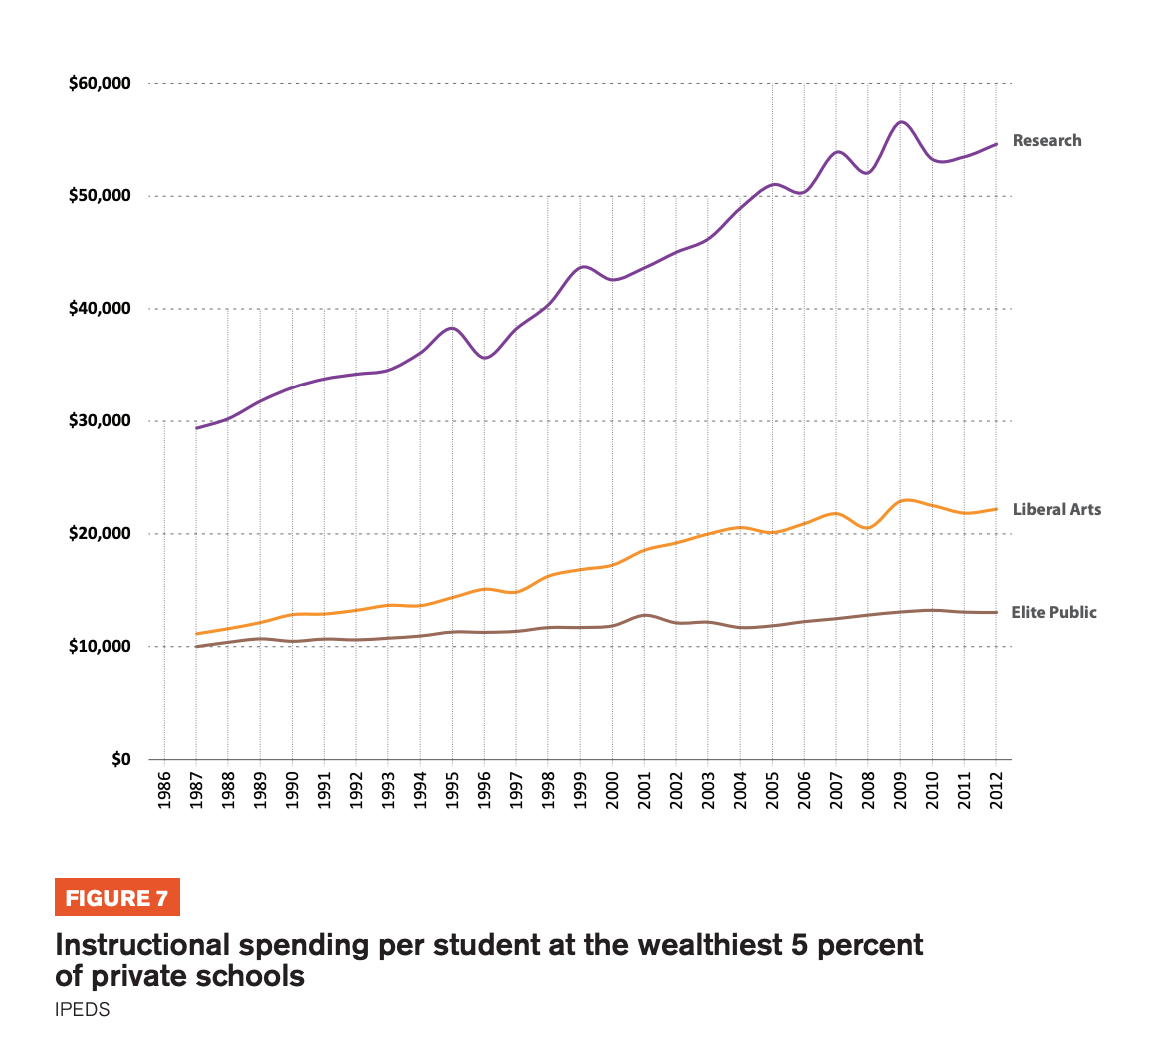 Figure 7 includes graphs showcasing the Instructional spending per student at the wealthiest 5 percent of private schools